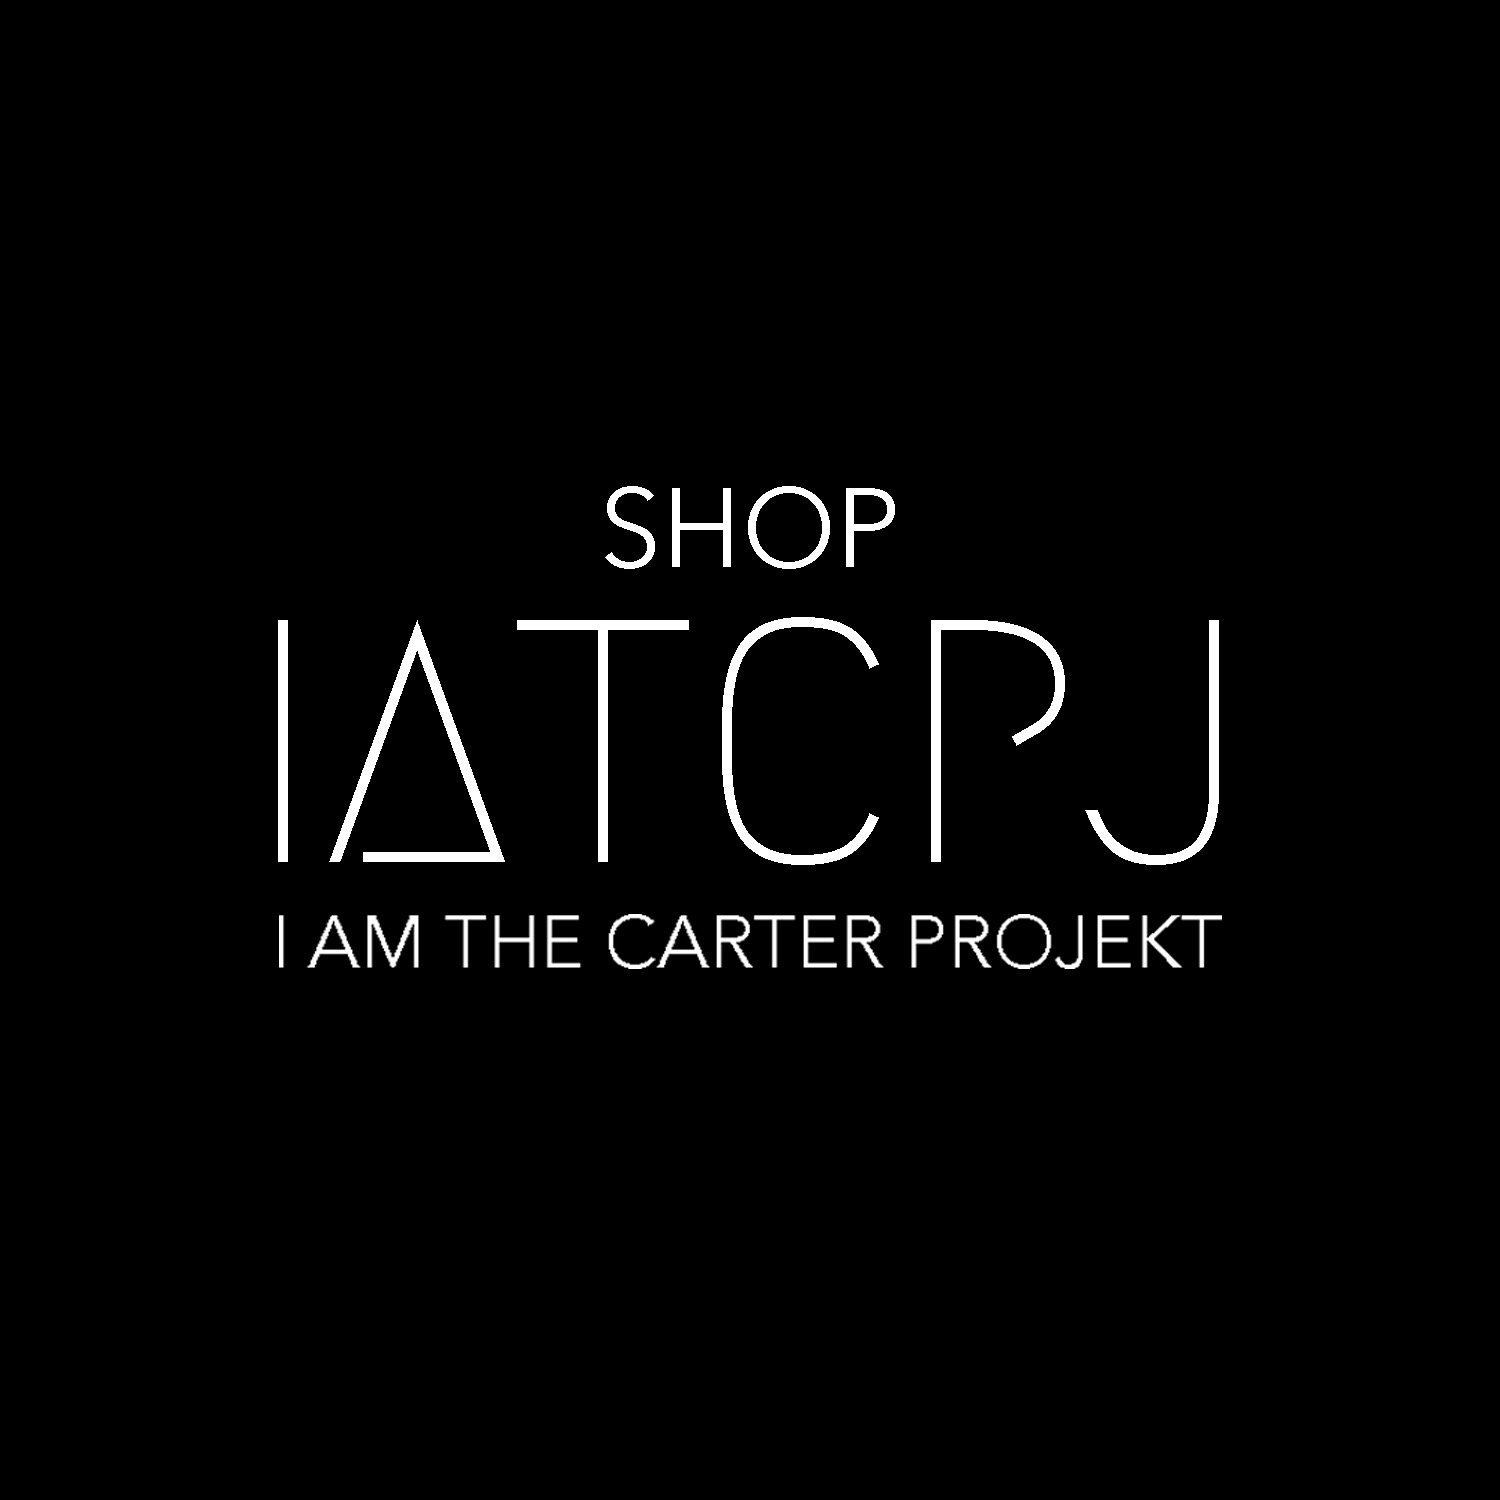 I AM THE CARTER PROJEKT